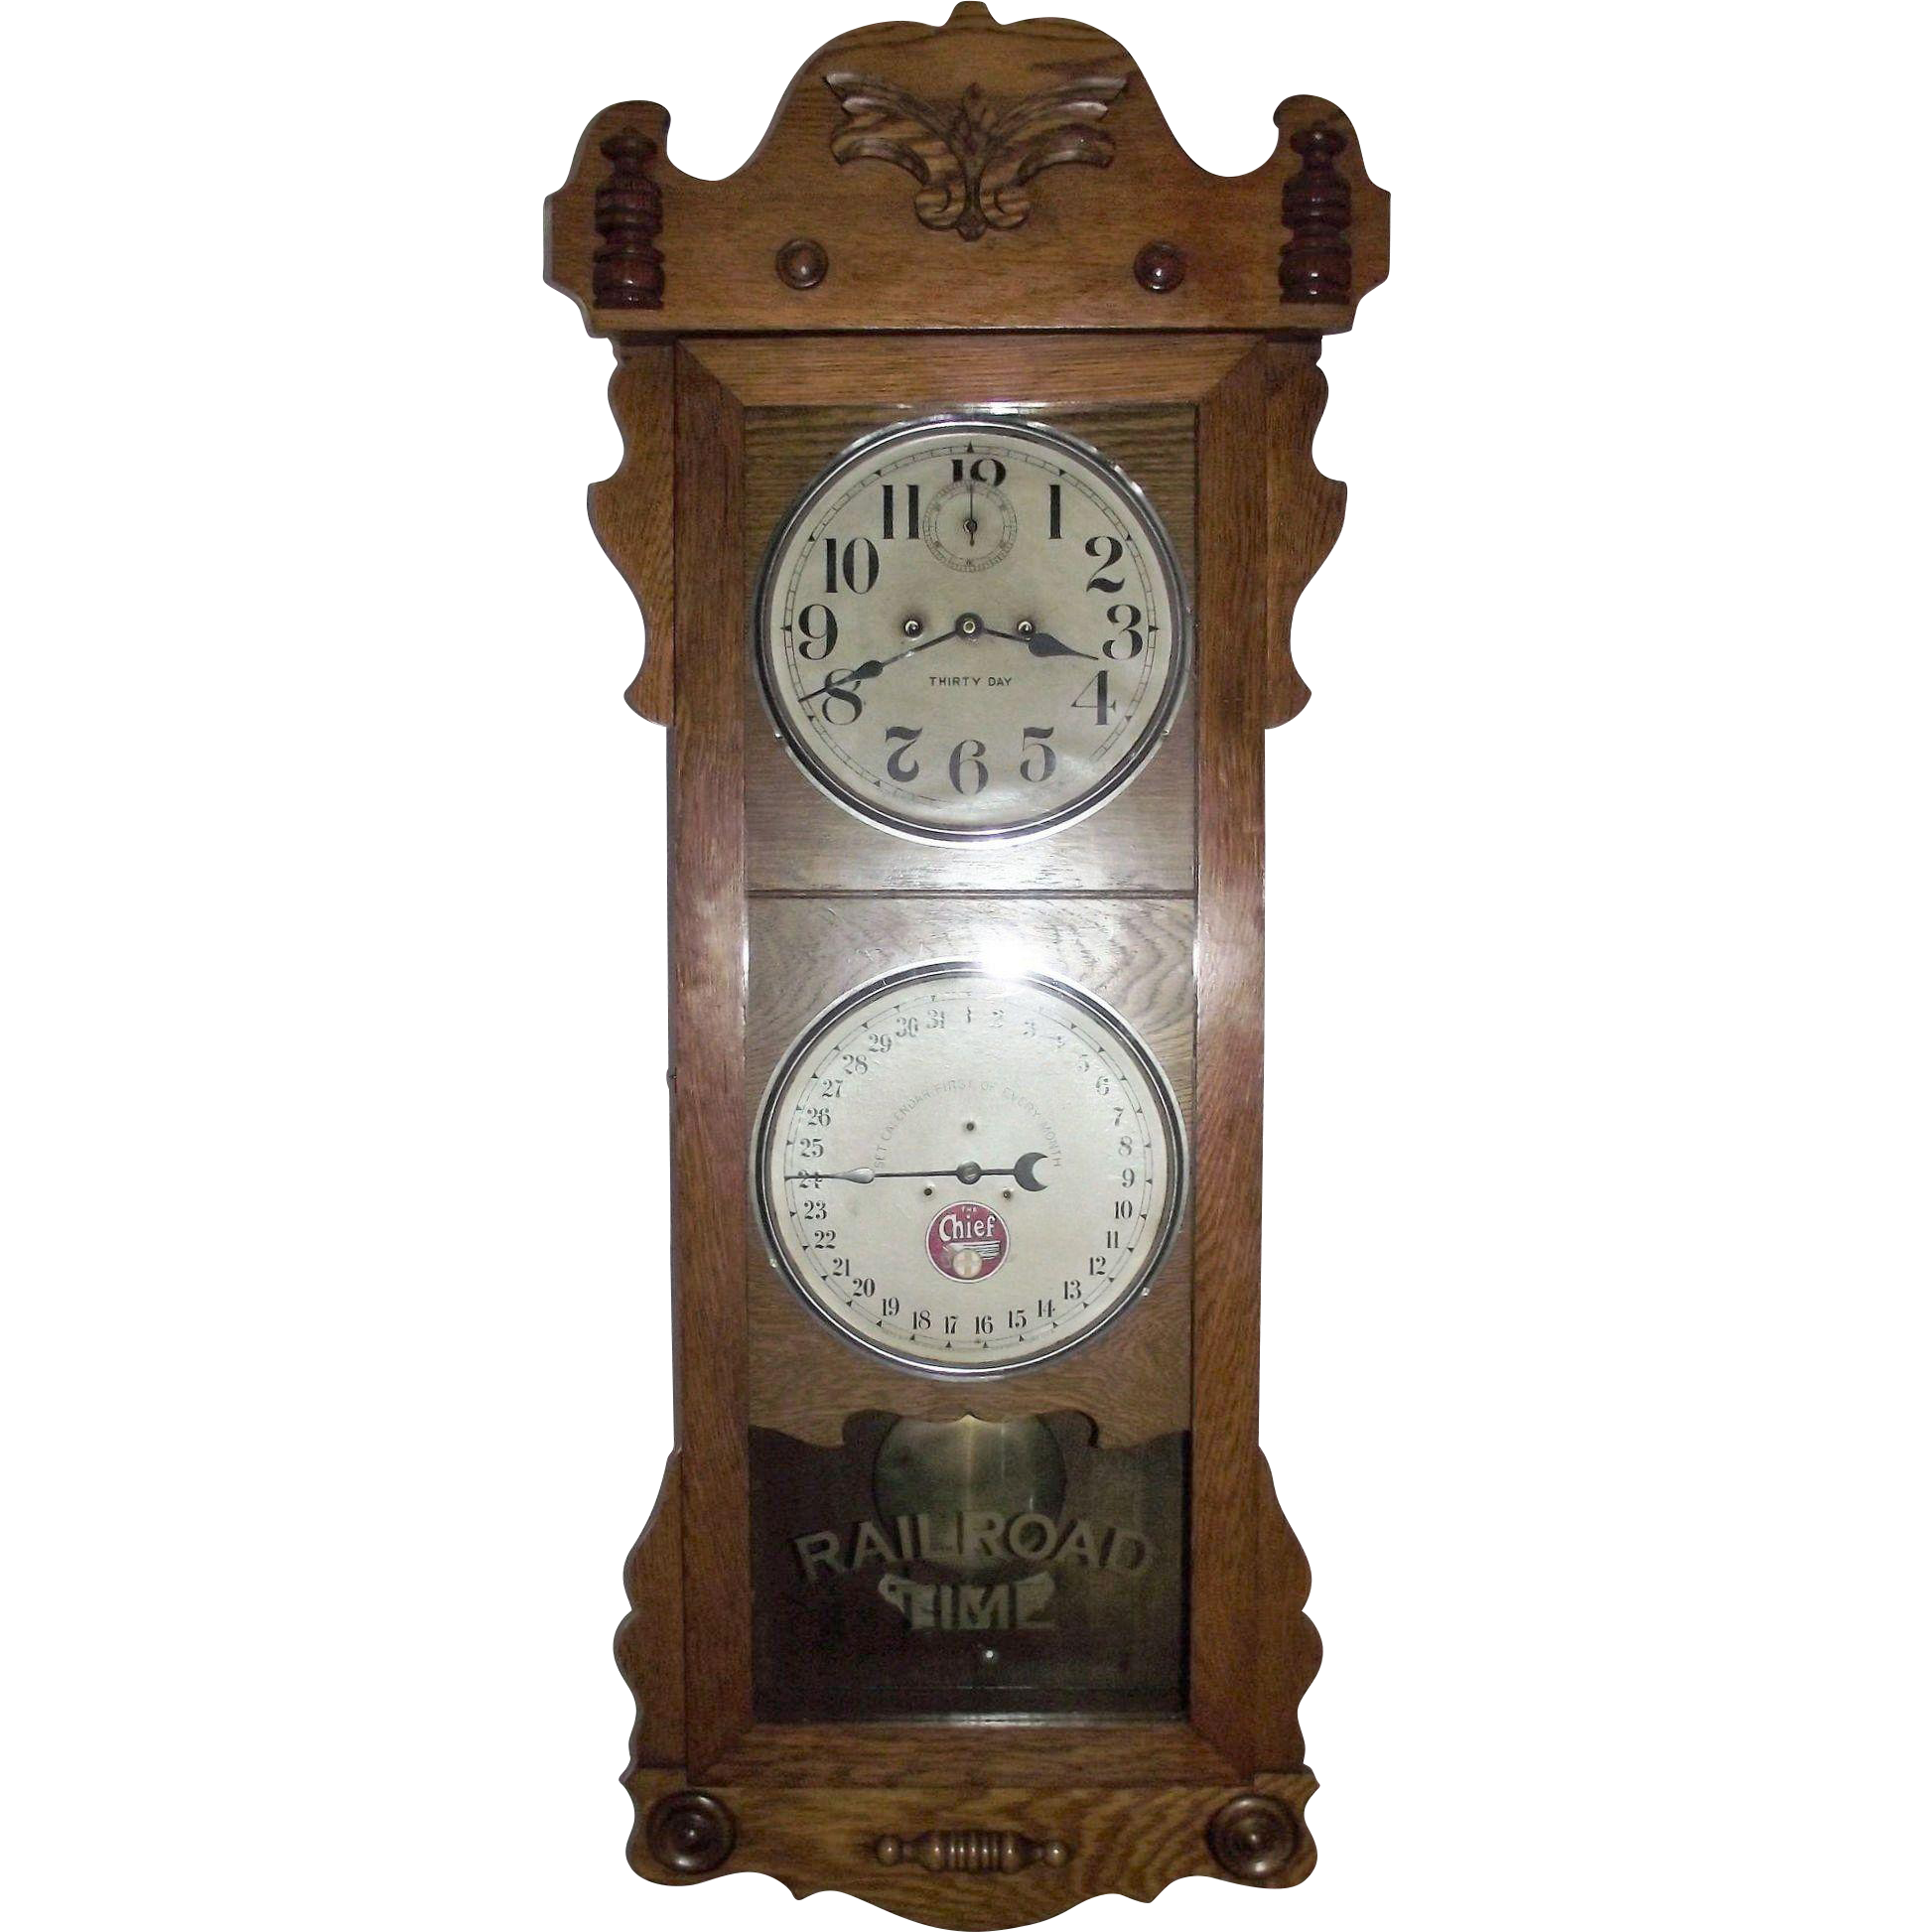 """Historic """"Santa Fe Railroad * William's Depot""""  promoting """"The Chief"""" Line on a Double Dial 30 Day """"Rutland"""" Model Calendar Clock, made by The New Haven Co. Circa 1914 !!!"""